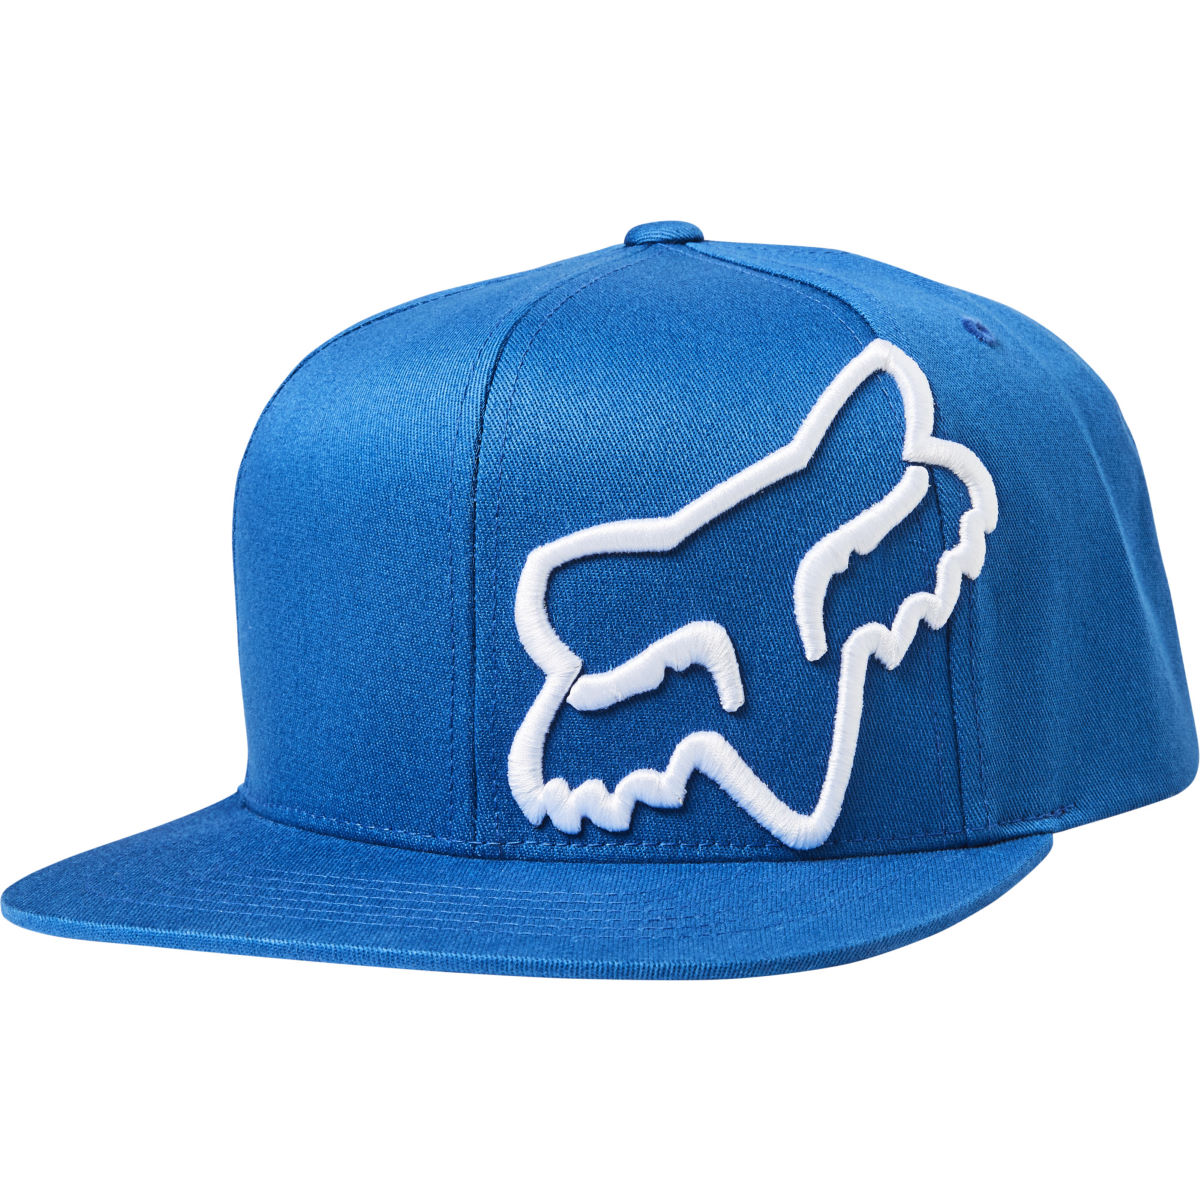 Fox Racing Headers Snapback Hat - One Size Blue/white  Caps